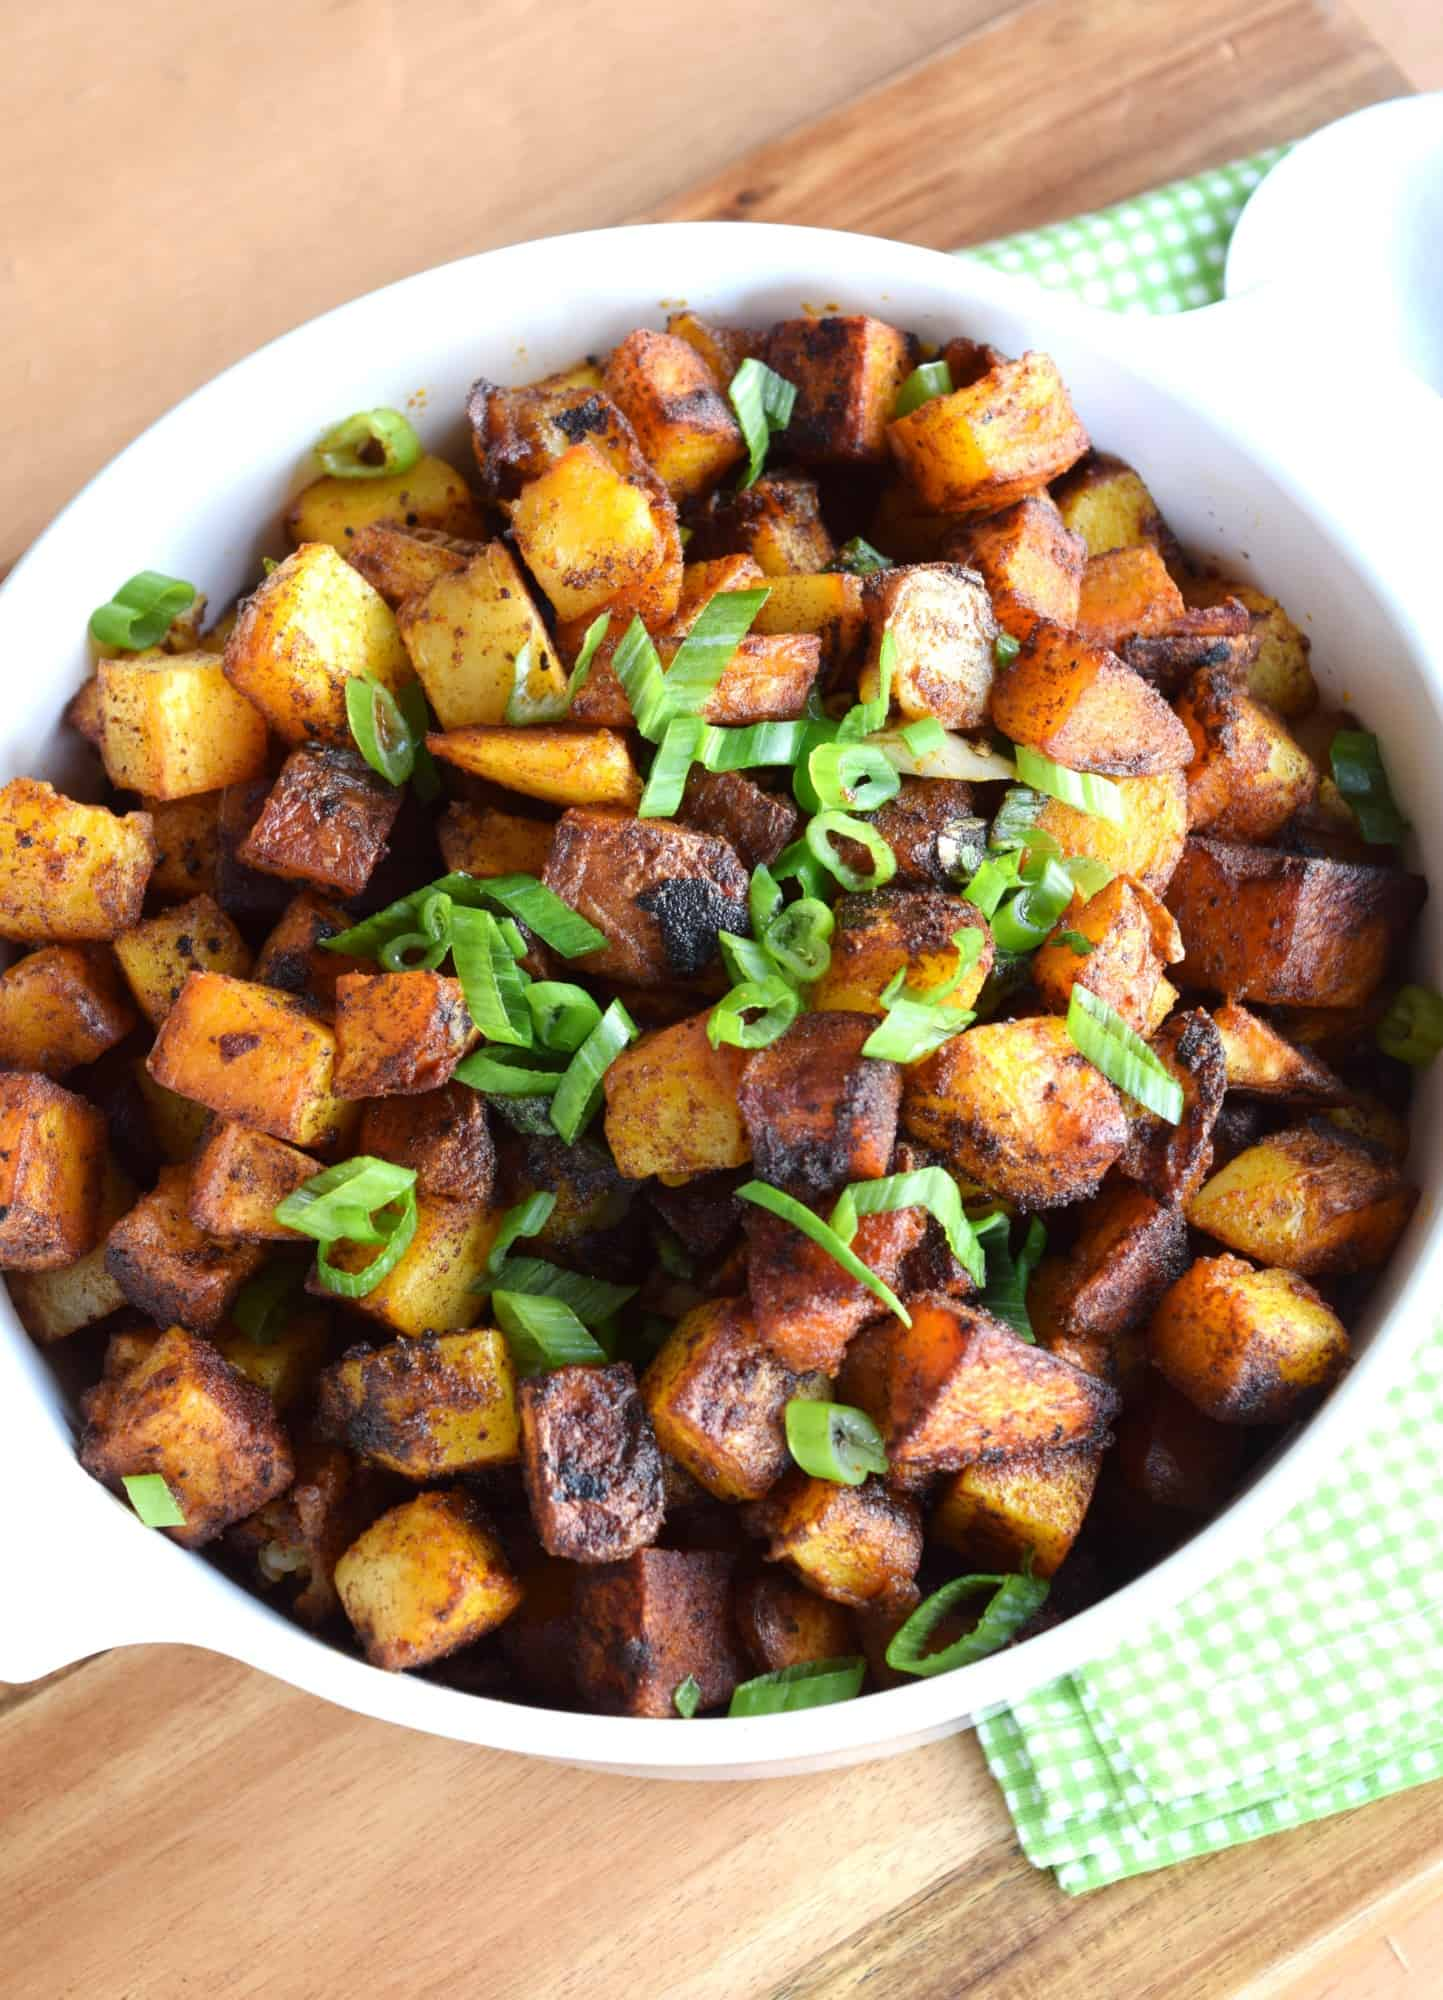 Skillet Roasted Potatoes